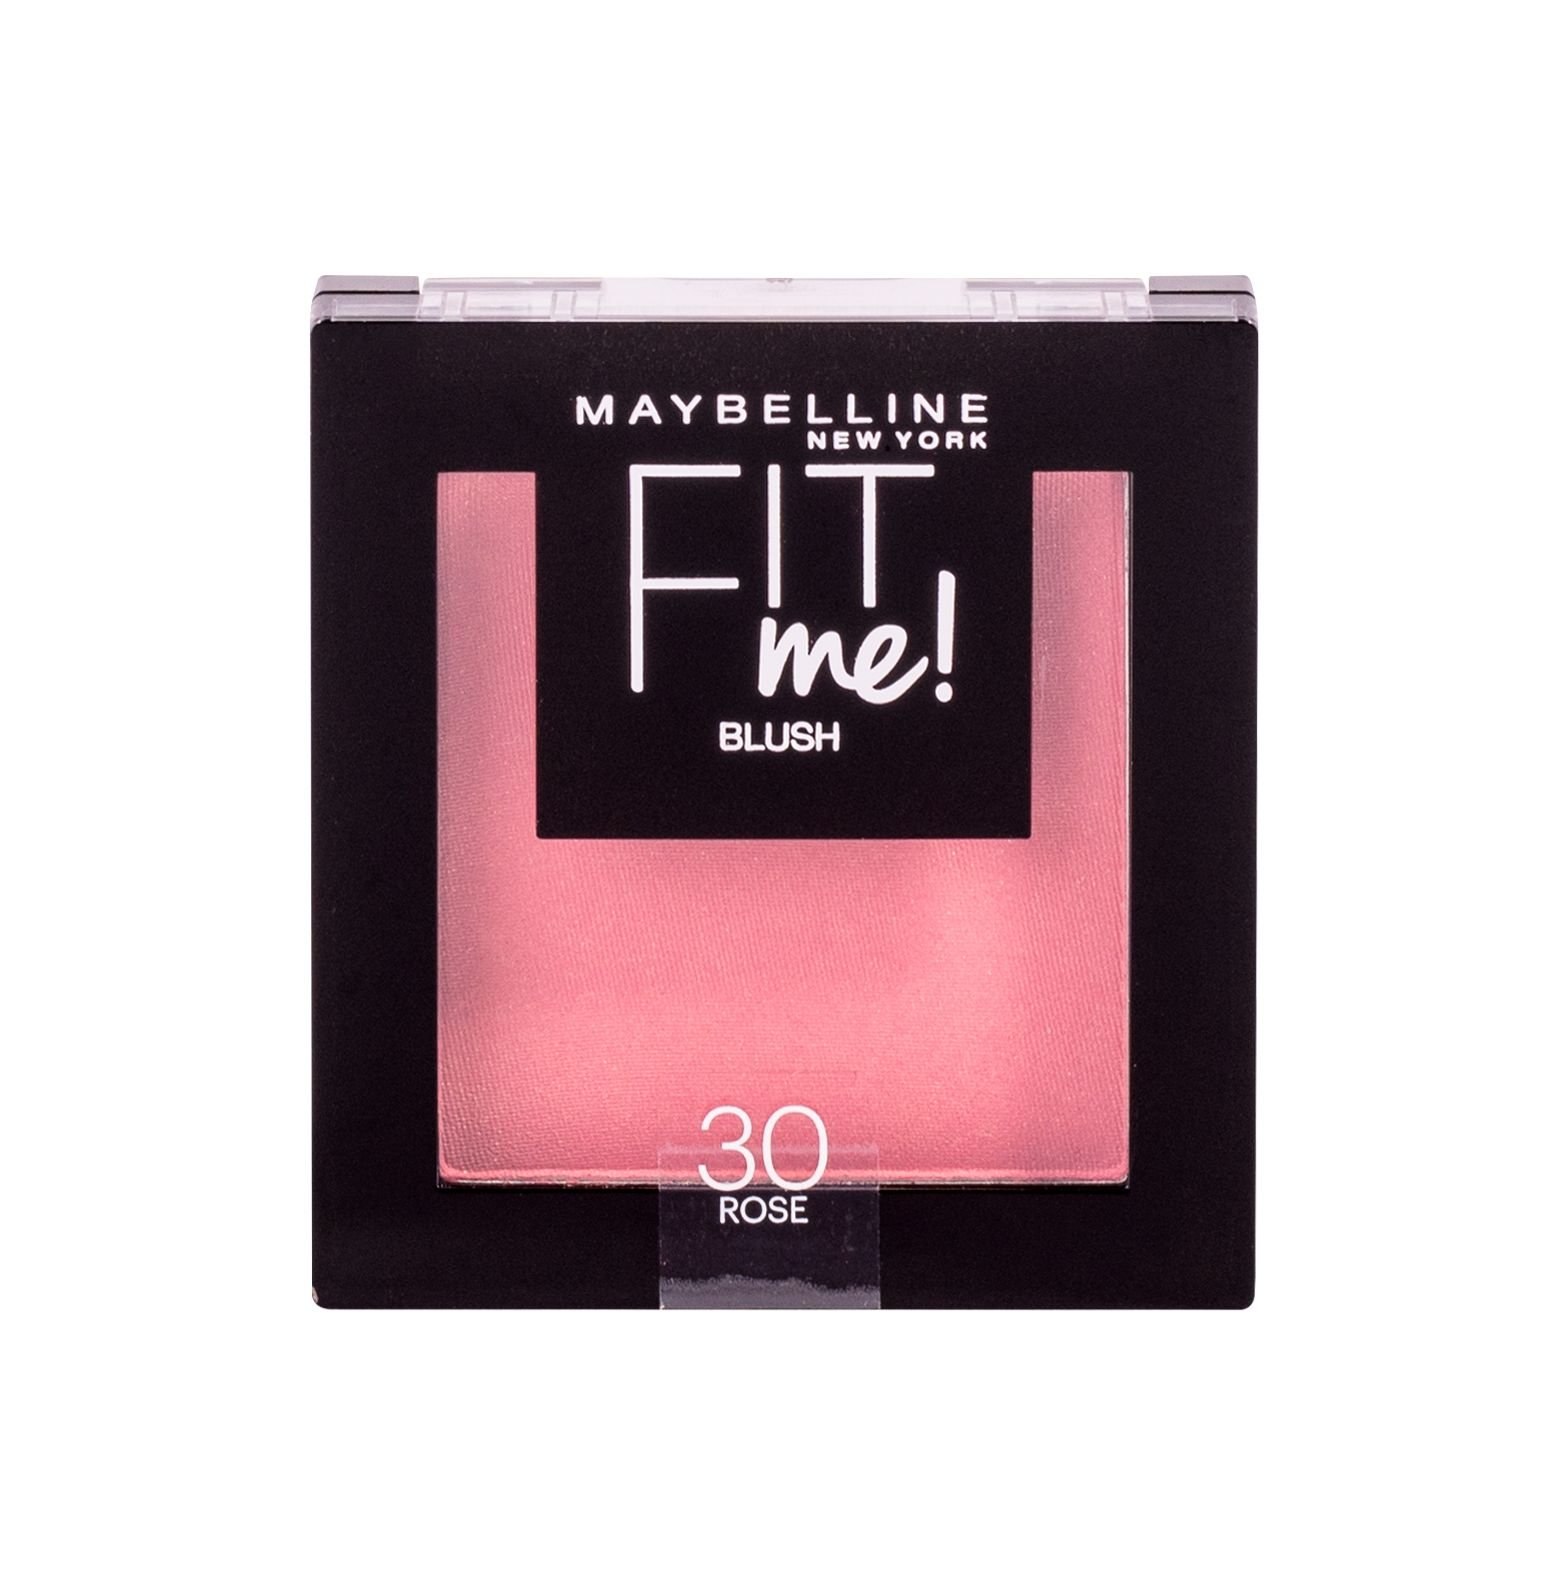 Maybelline Fit Me! Blush 5ml 30 Rose